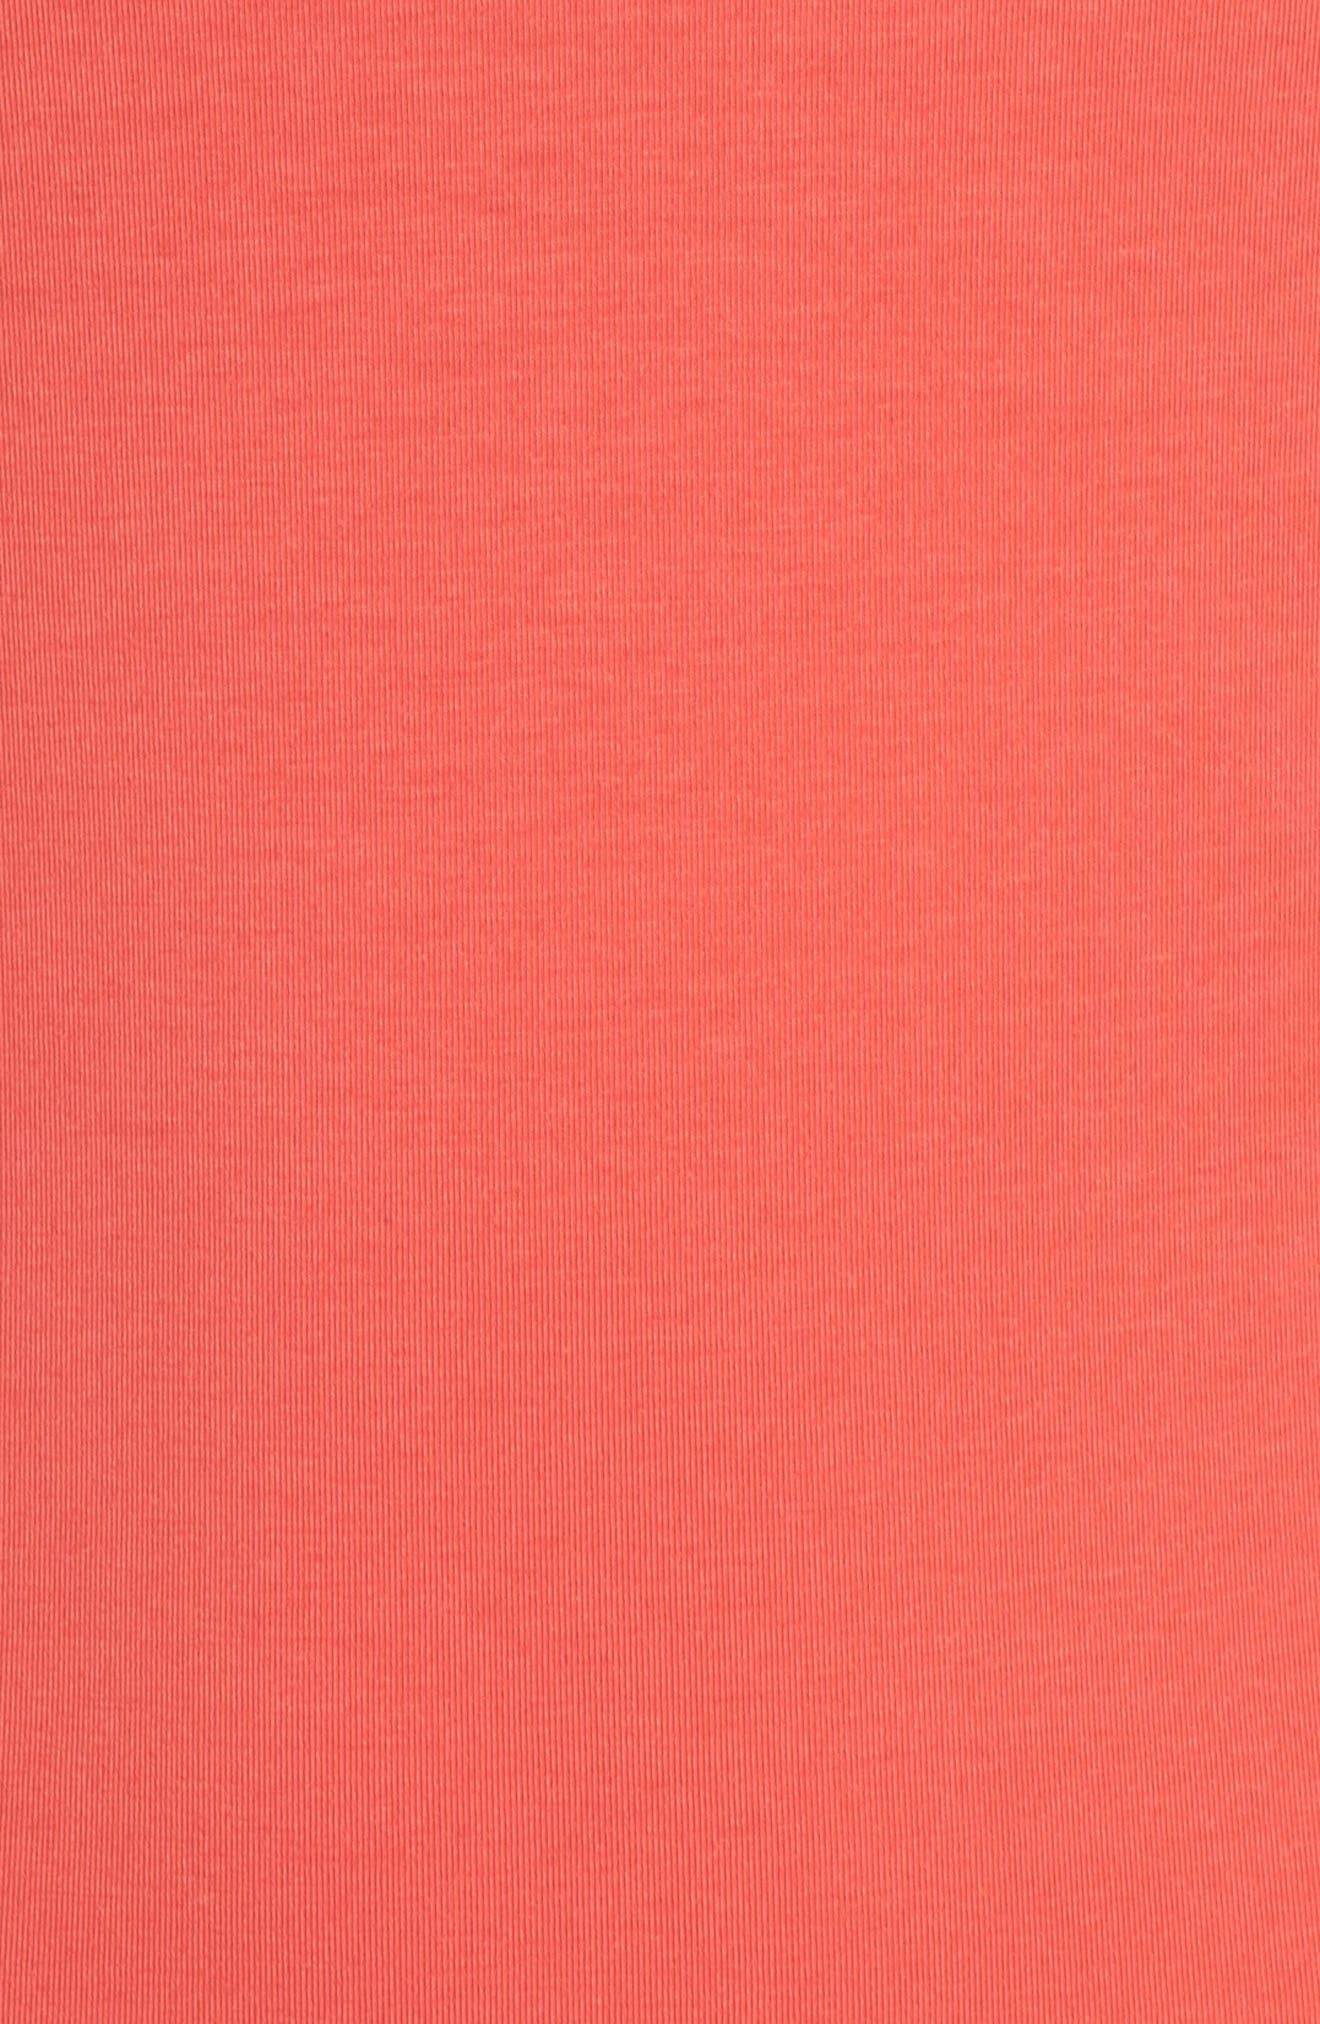 Z Tee,                             Alternate thumbnail 6, color,                             Red Hibiscus